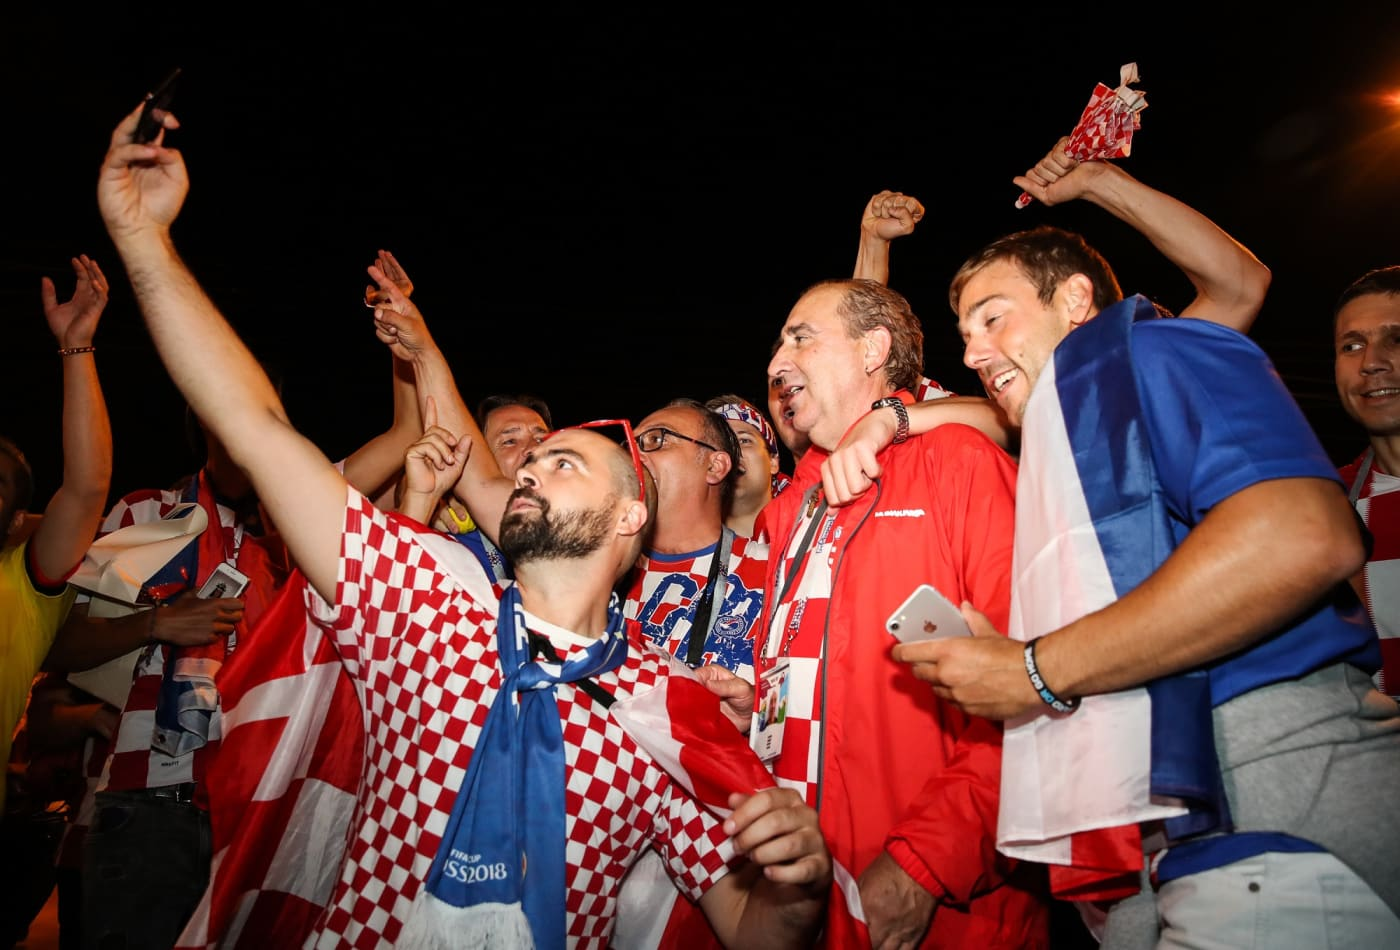 cab8f5c11 Americans are paying over $6,000 to go to the World Cup finals in Russia